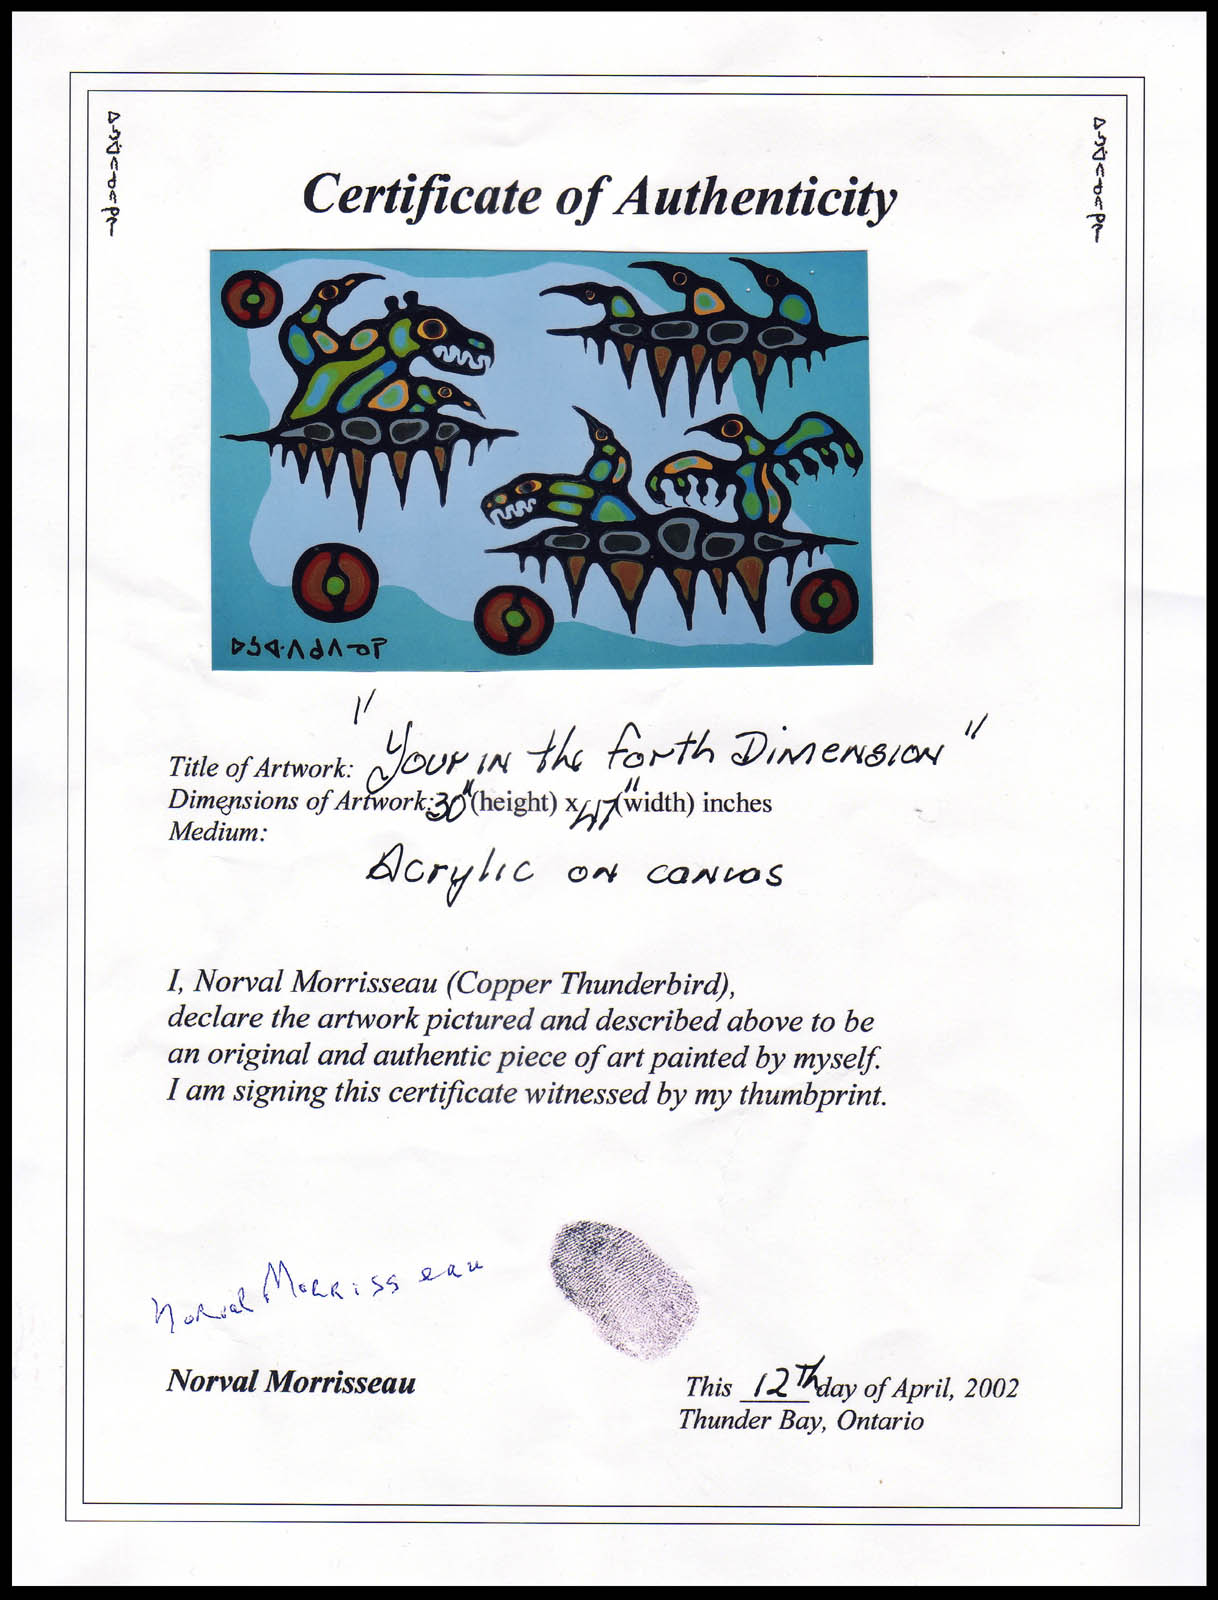 Norval morrisseau blog april 2015 for Certificate of authenticity autograph template